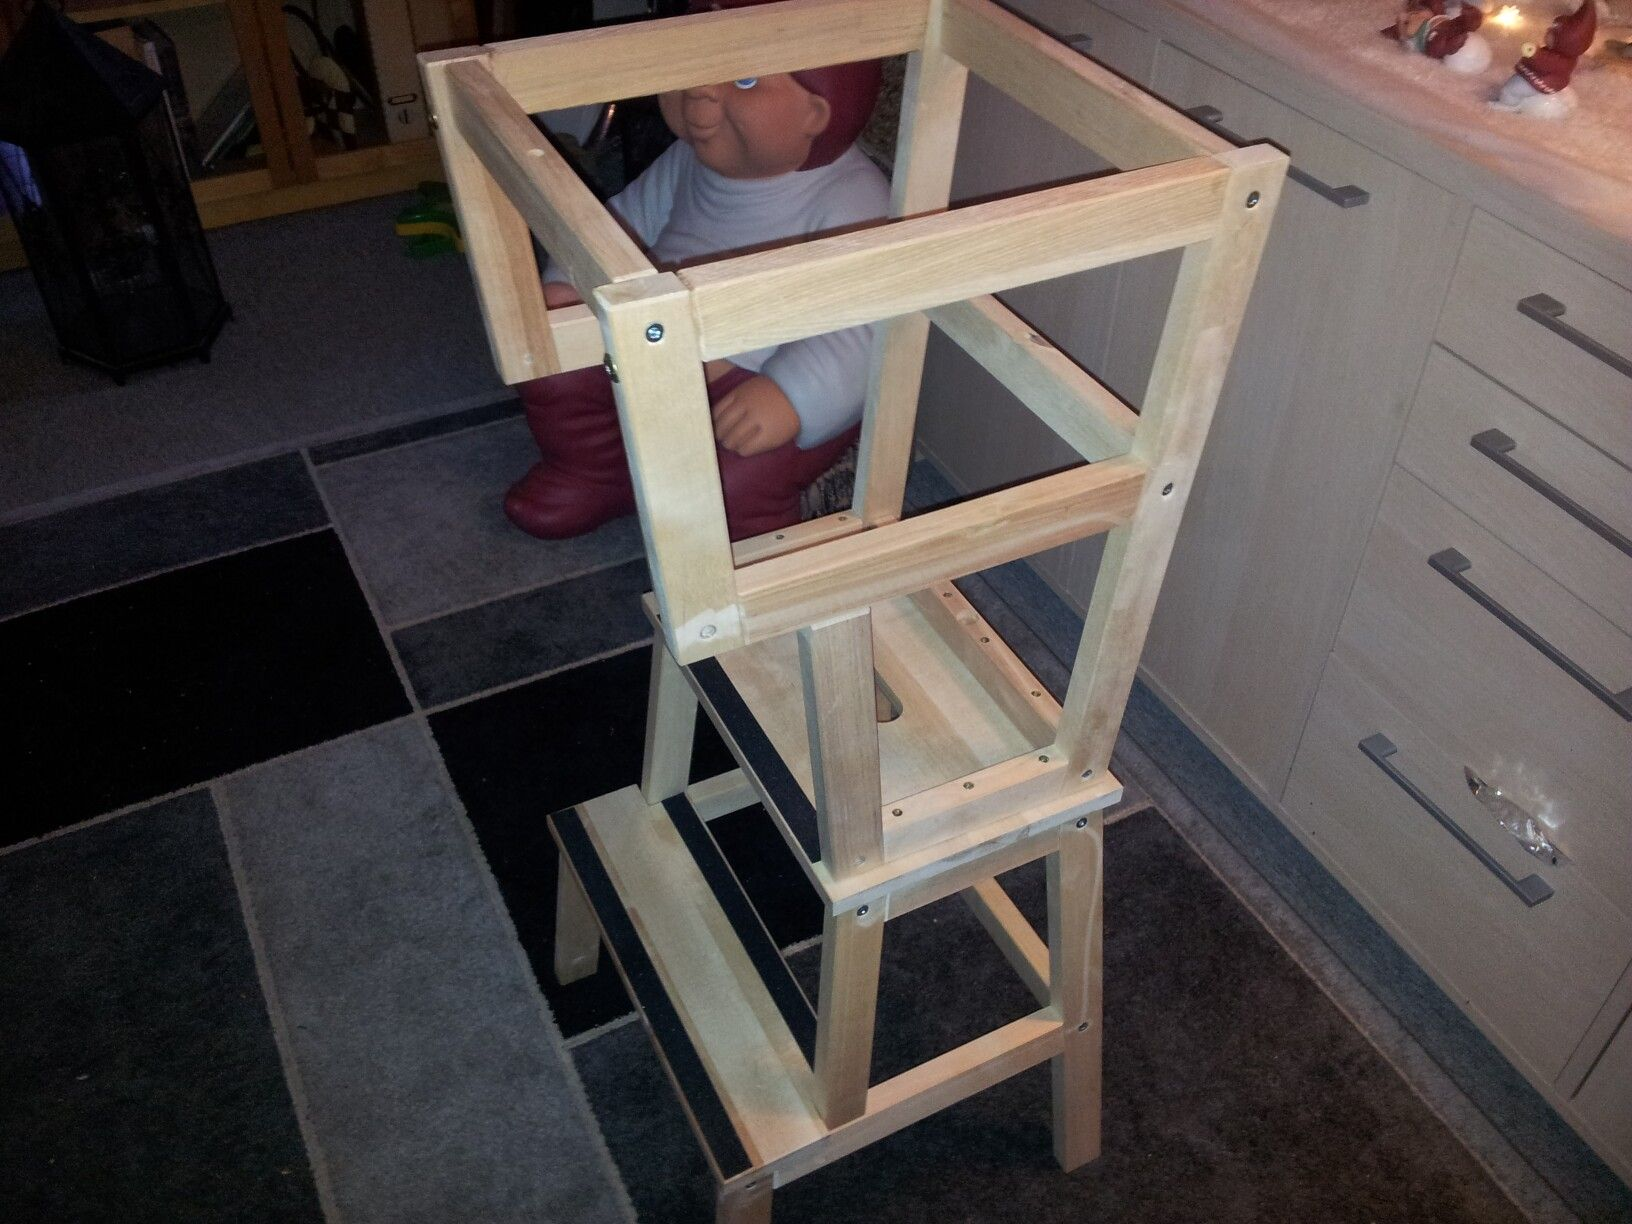 Learning Tower Build From 2 Ikea Bekvam Step Stools Learning